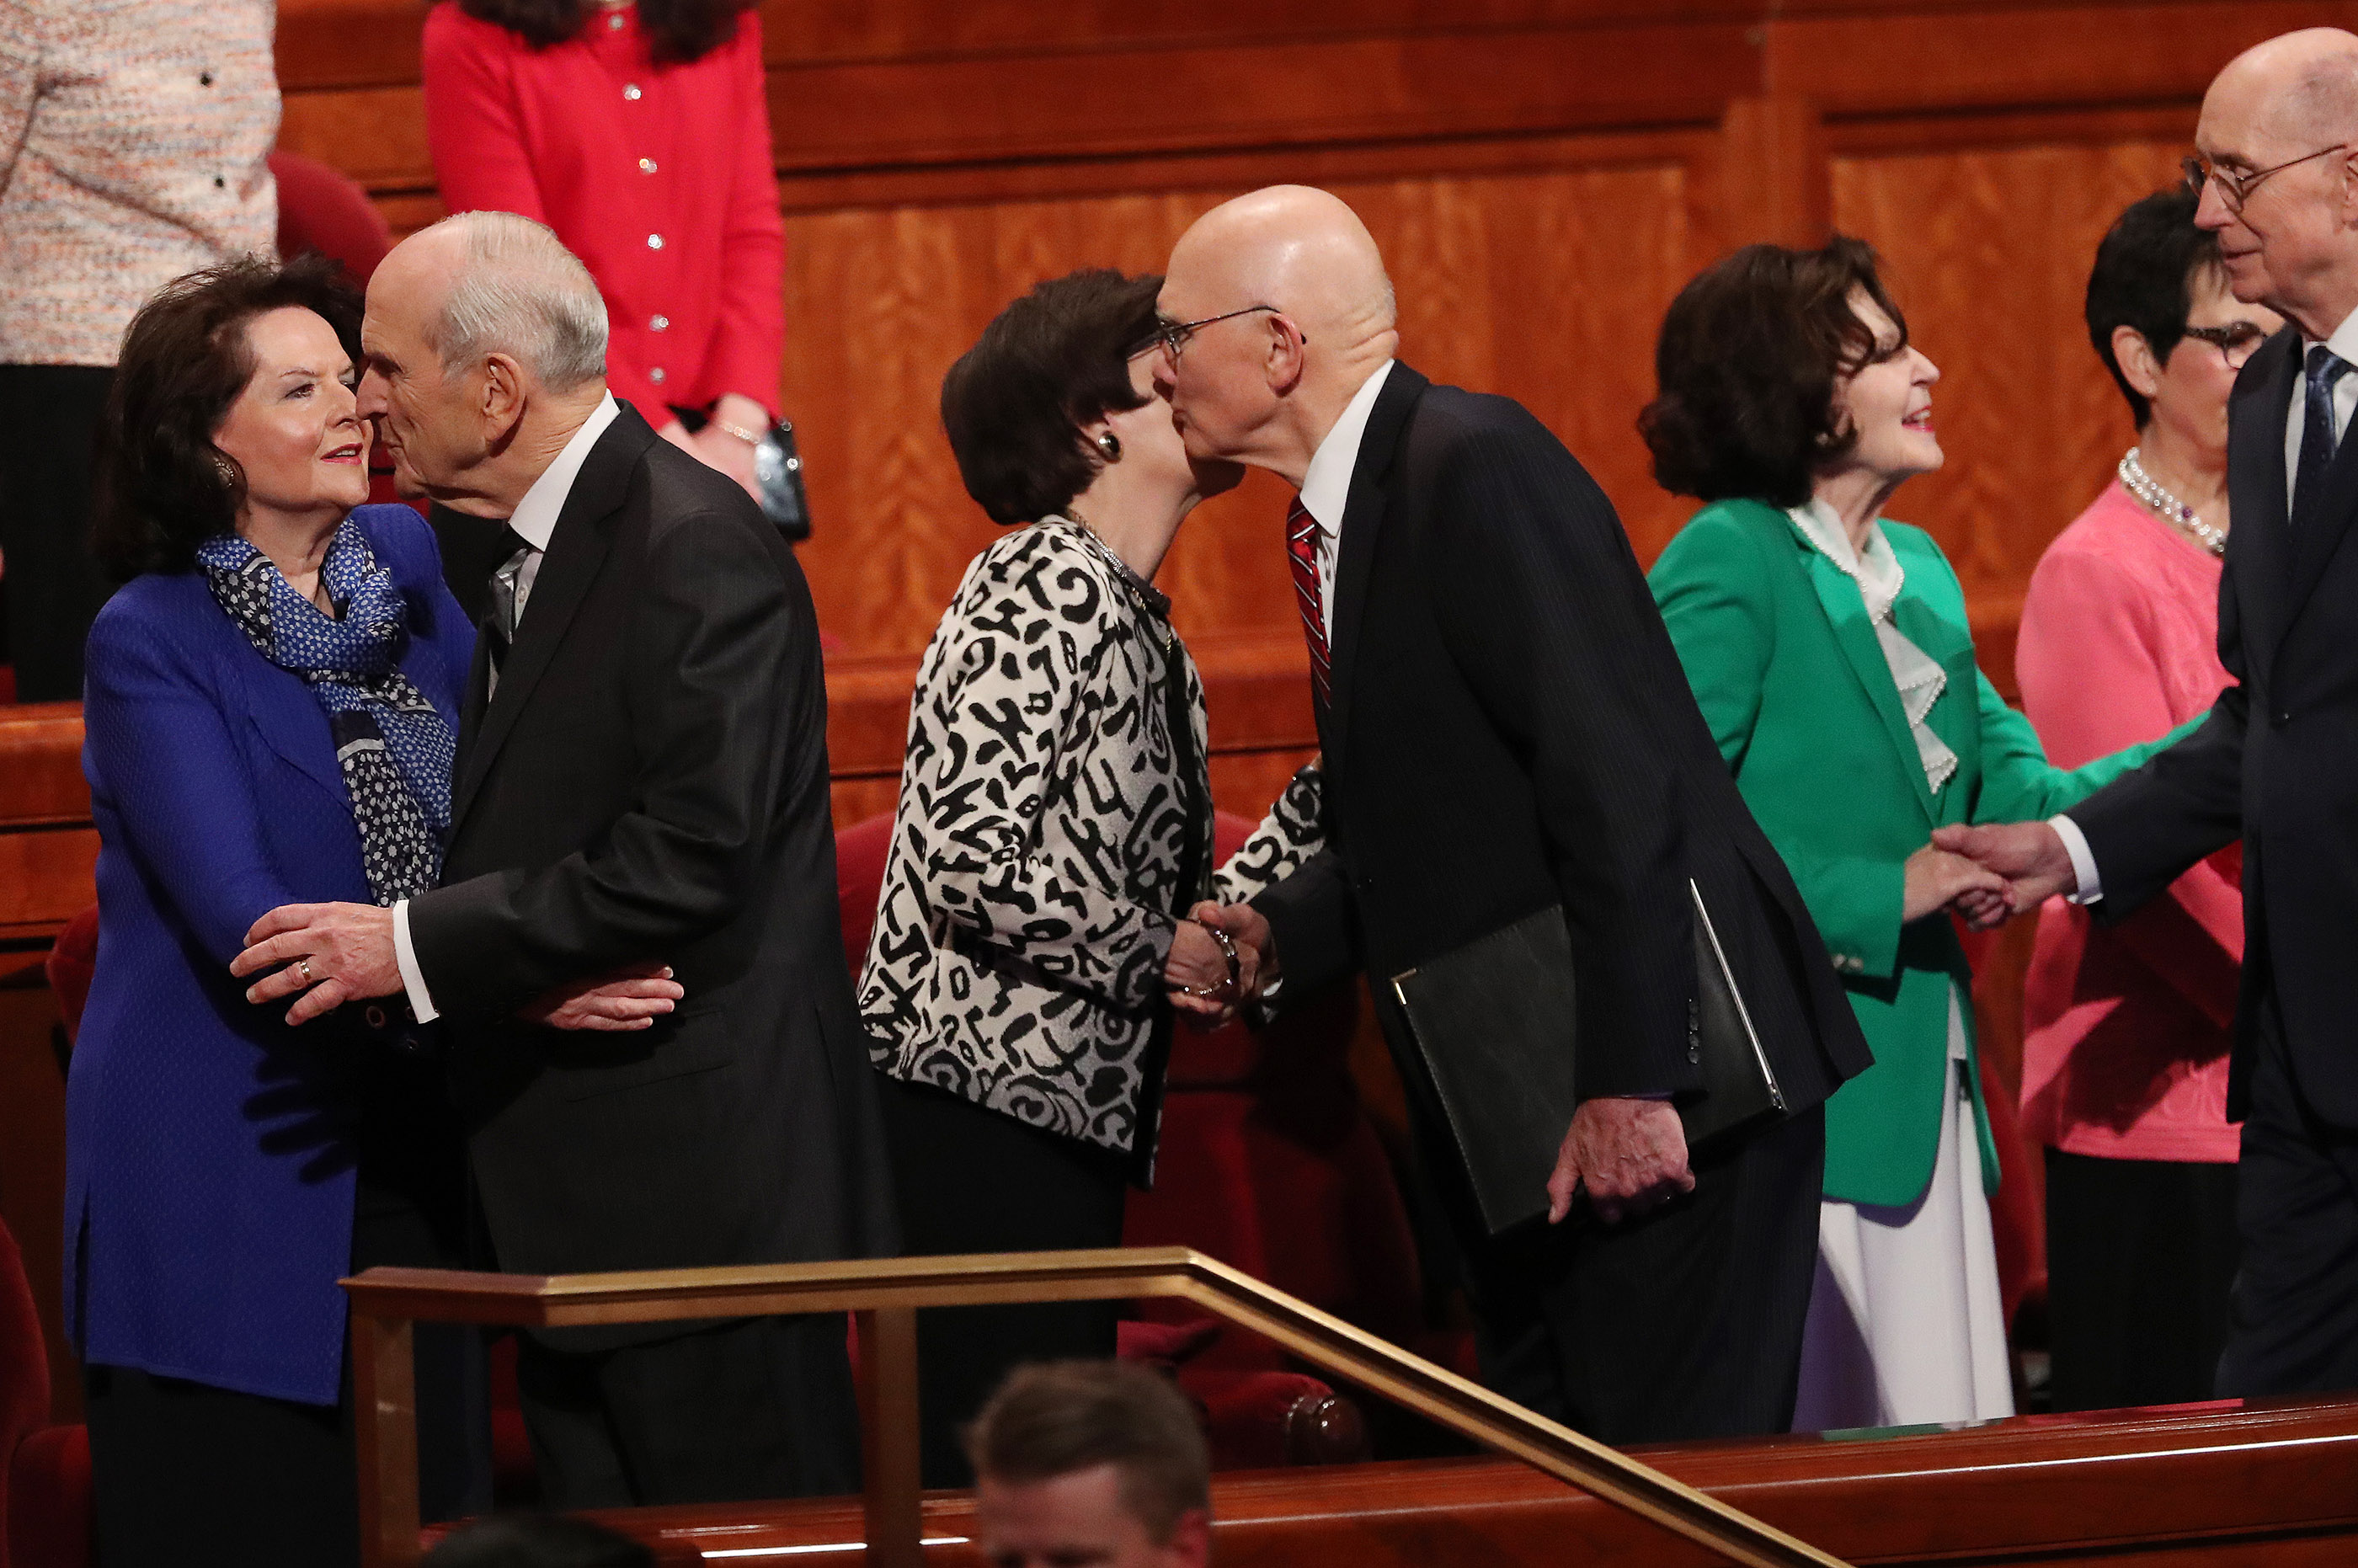 President Russell M. Nelson of The Church of Jesus Christ of Latter-day Saints, left, and his counselor, President Dallin H. Oaks of the First Presidency, greet their wives as second counselor, President Henry B. Eyring, and others enter the Conference Center during the Saturday morning session.